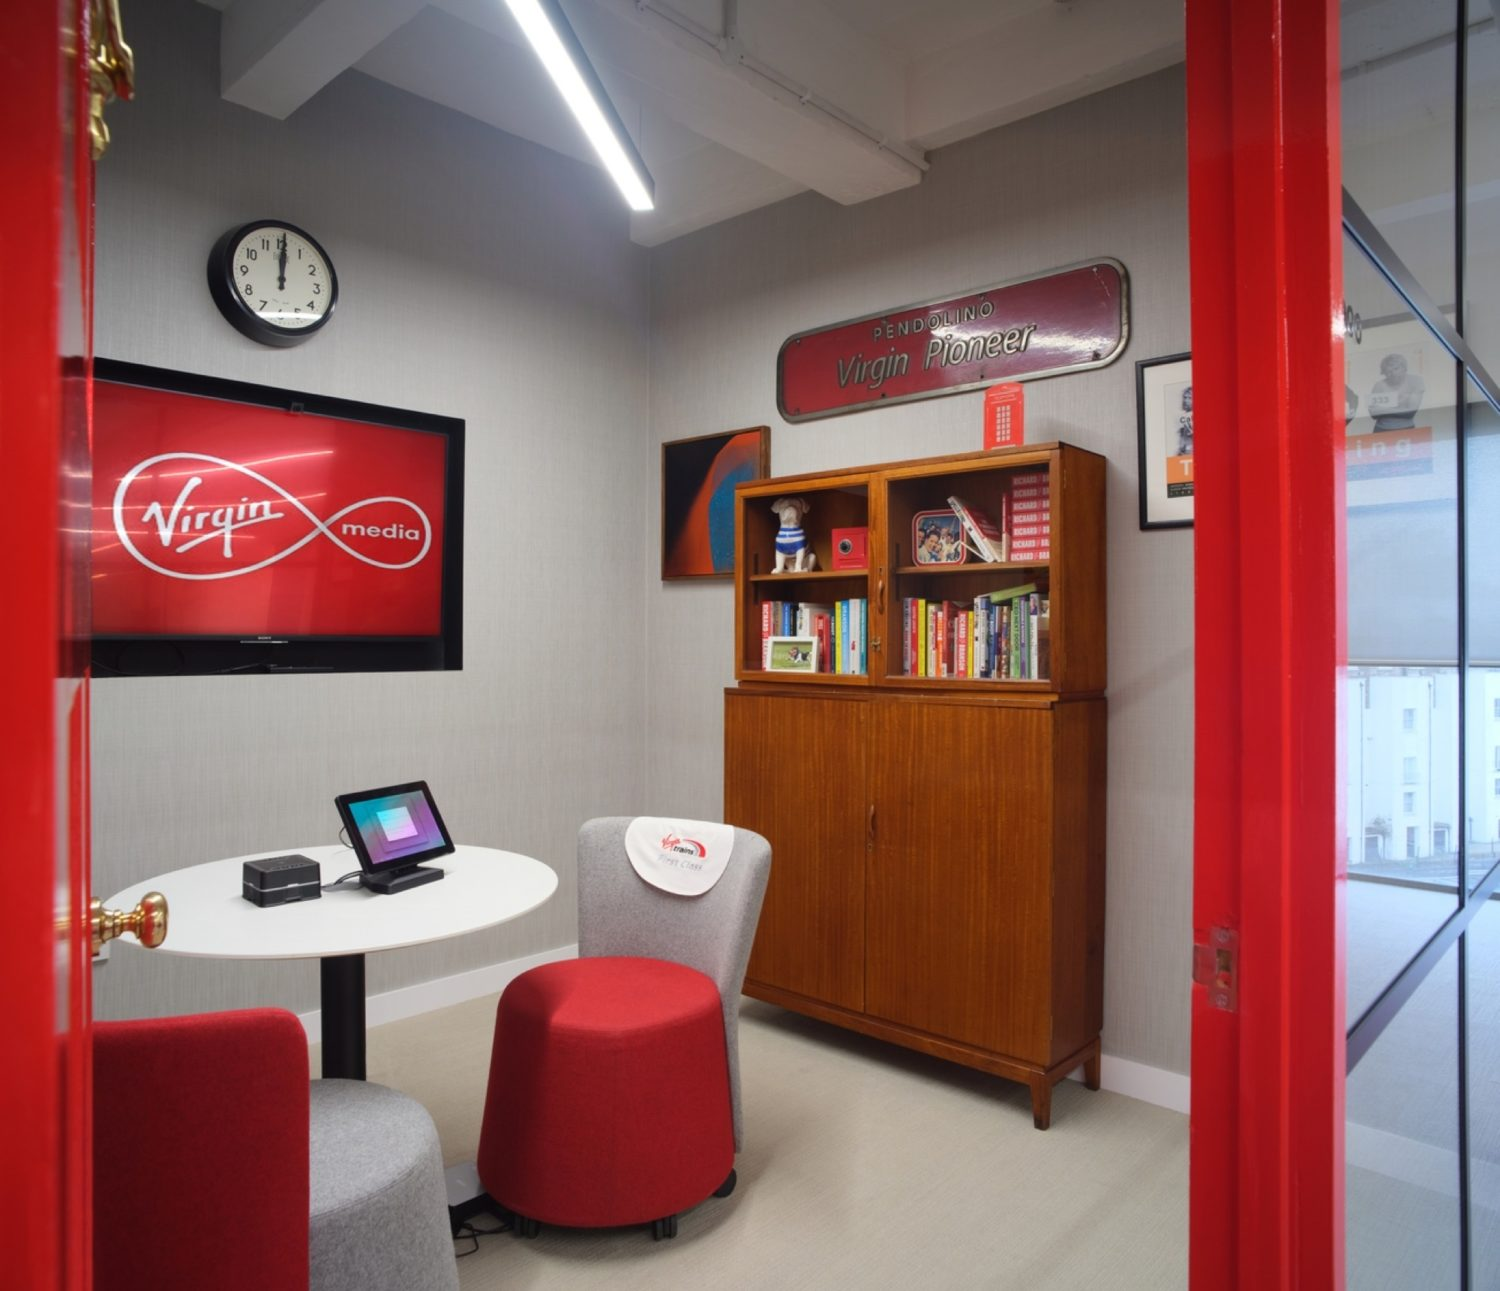 Breakout space designed for collaboration